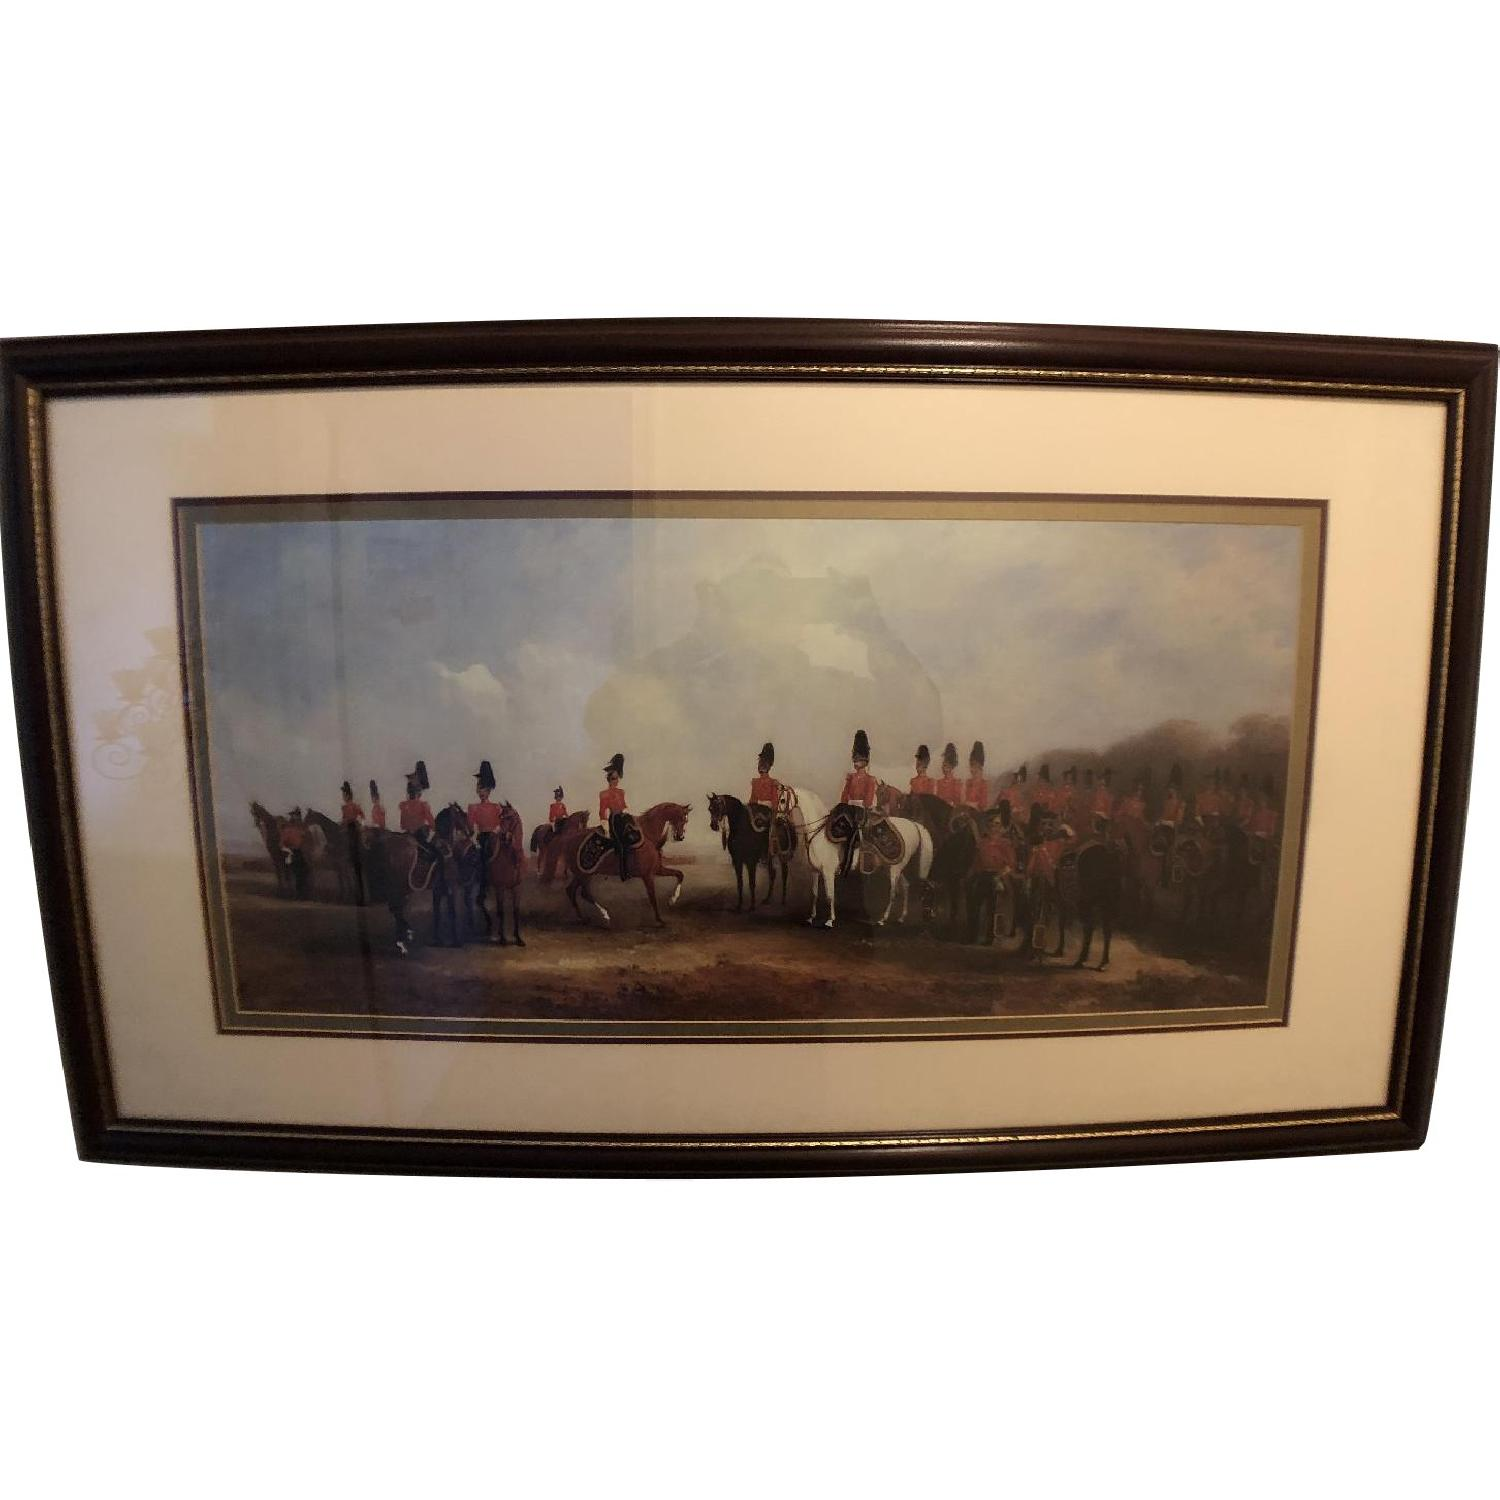 Bombay Co. Framed Print of Cavalry